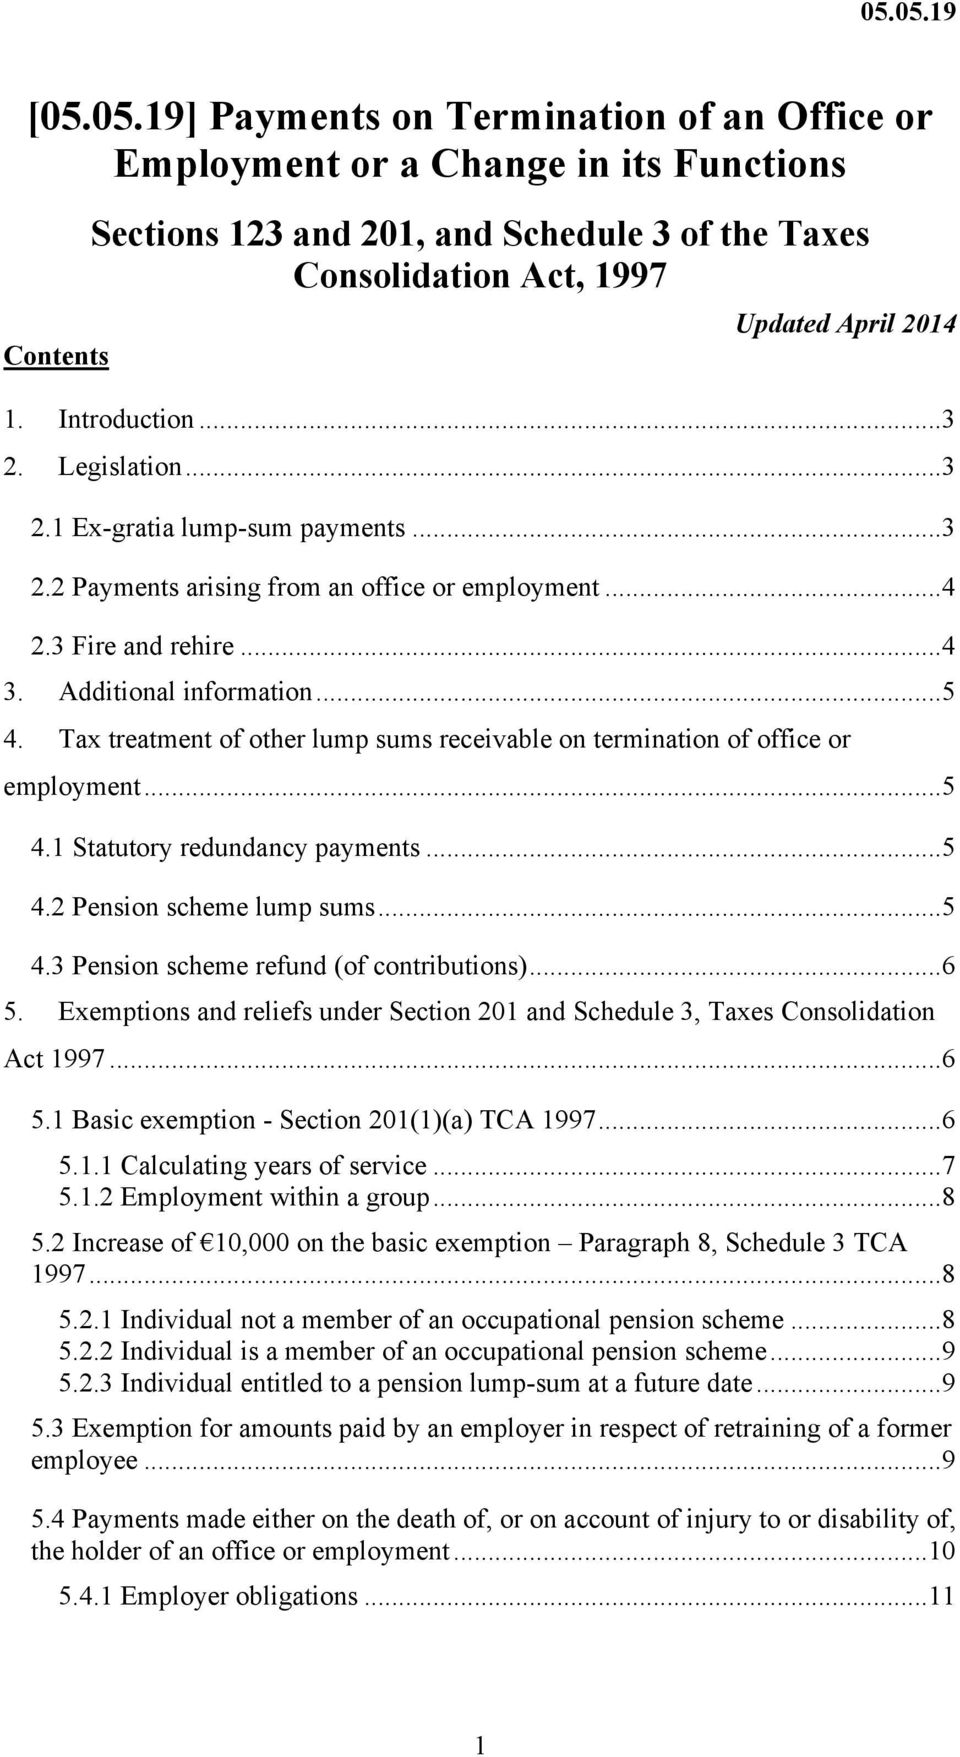 Tax treatment of other lump sums receivable on termination of office or employment...5 4.1 Statutory redundancy payments...5 4.2 Pension scheme lump sums...5 4.3 Pension scheme refund (of contributions).